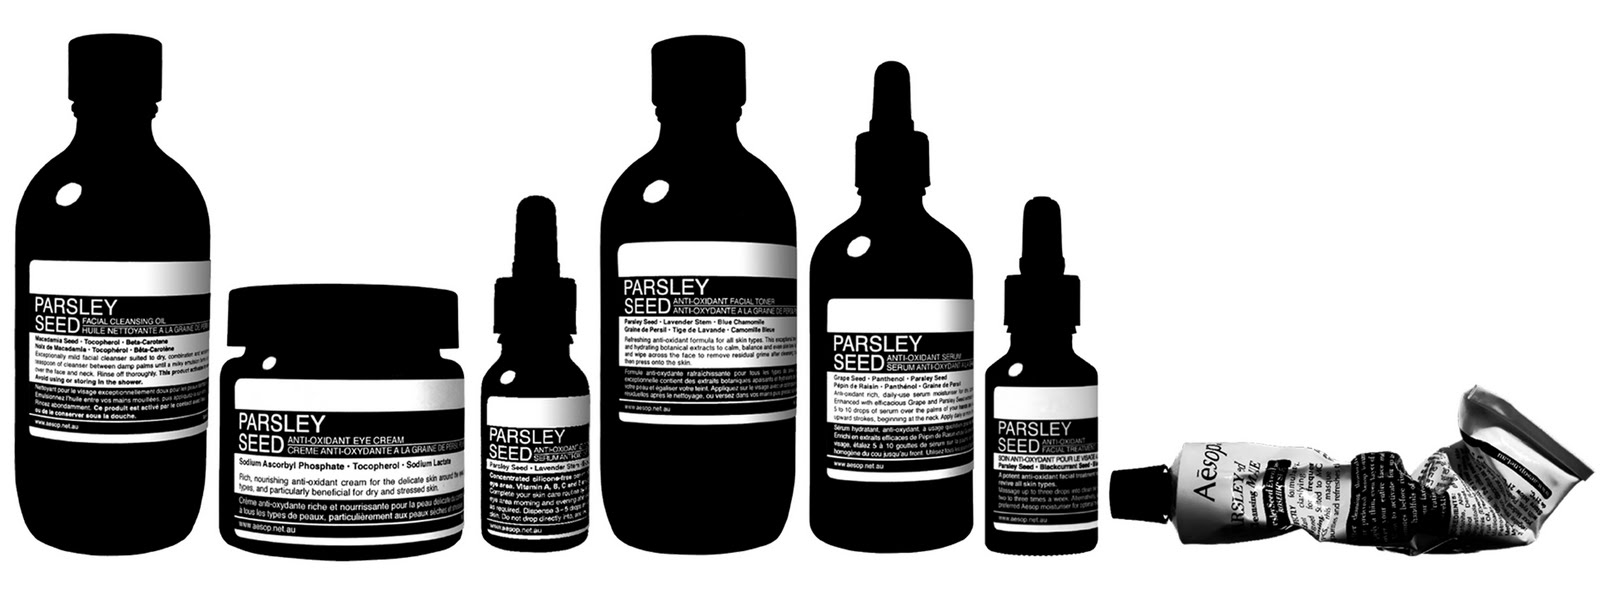 Aesop Skincare | Aesop Cosmetics Review | Aesop Products Online